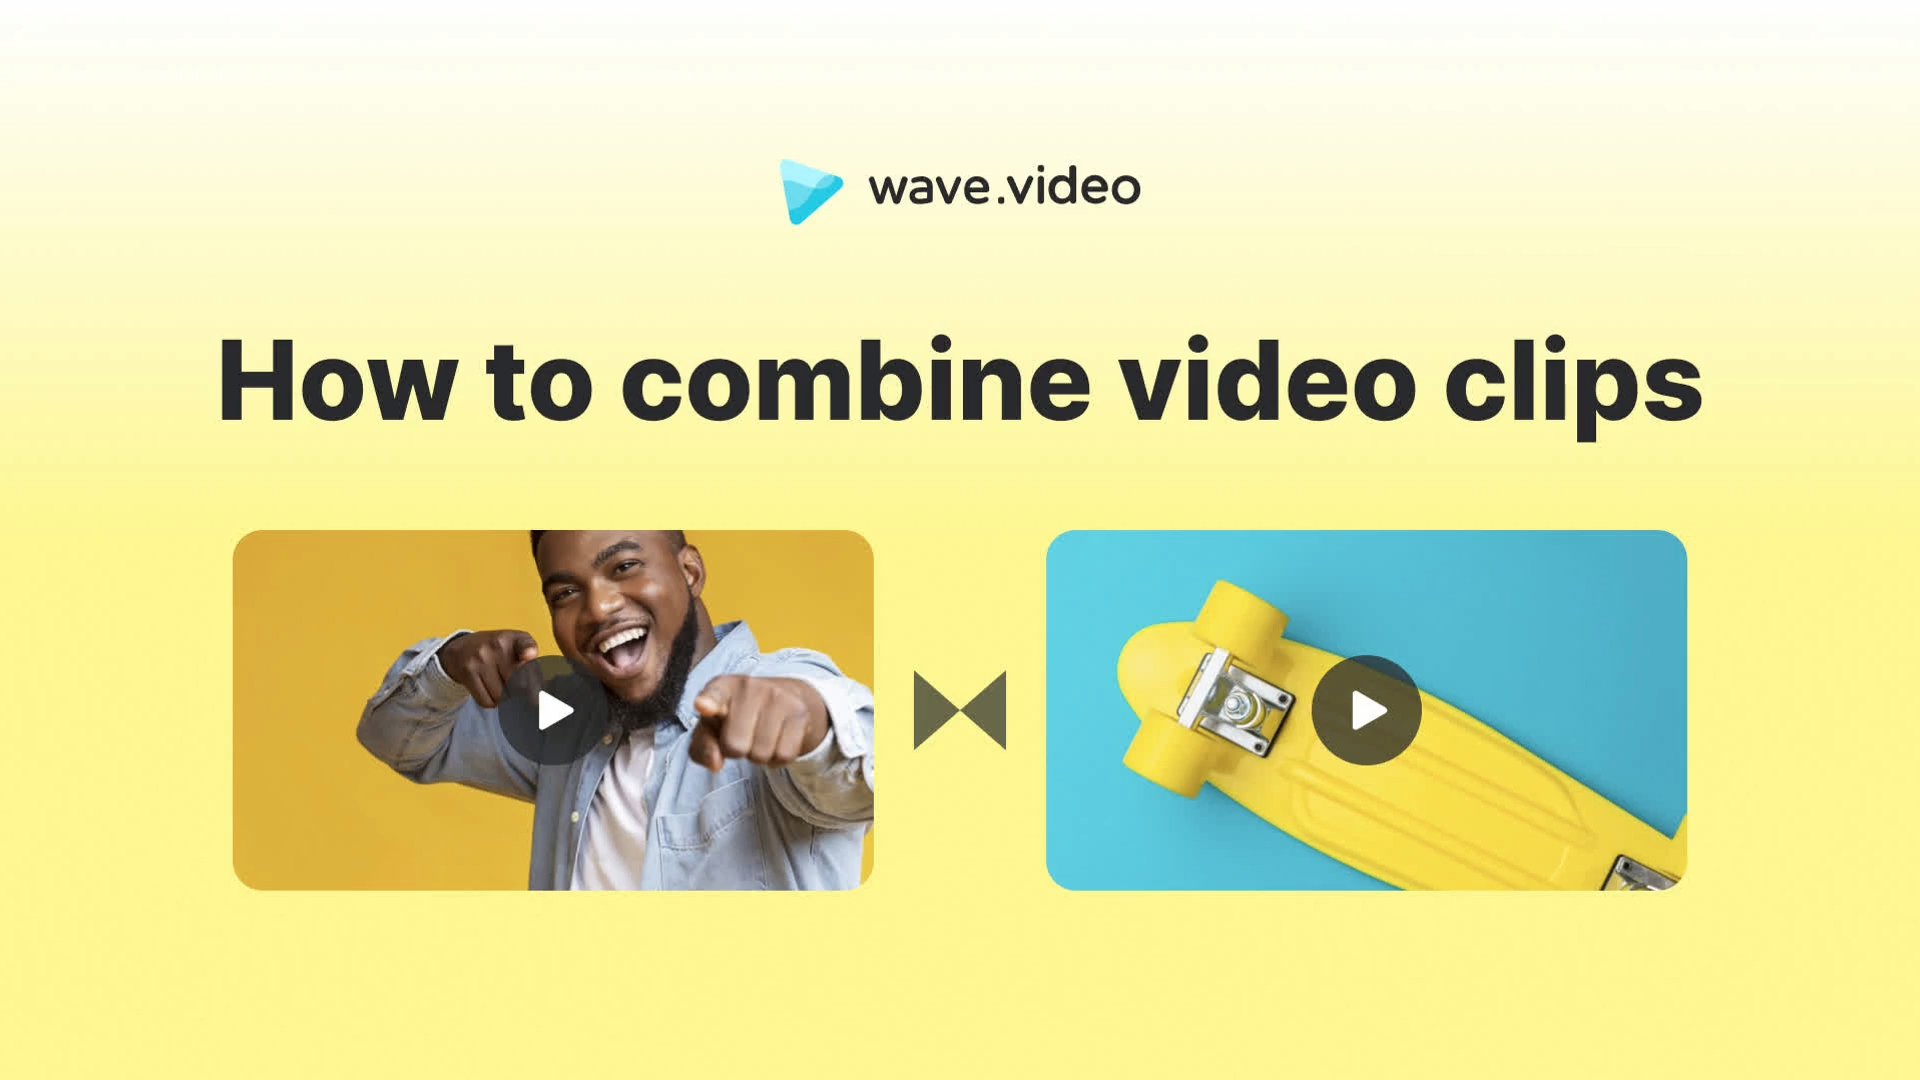 Combine video clips